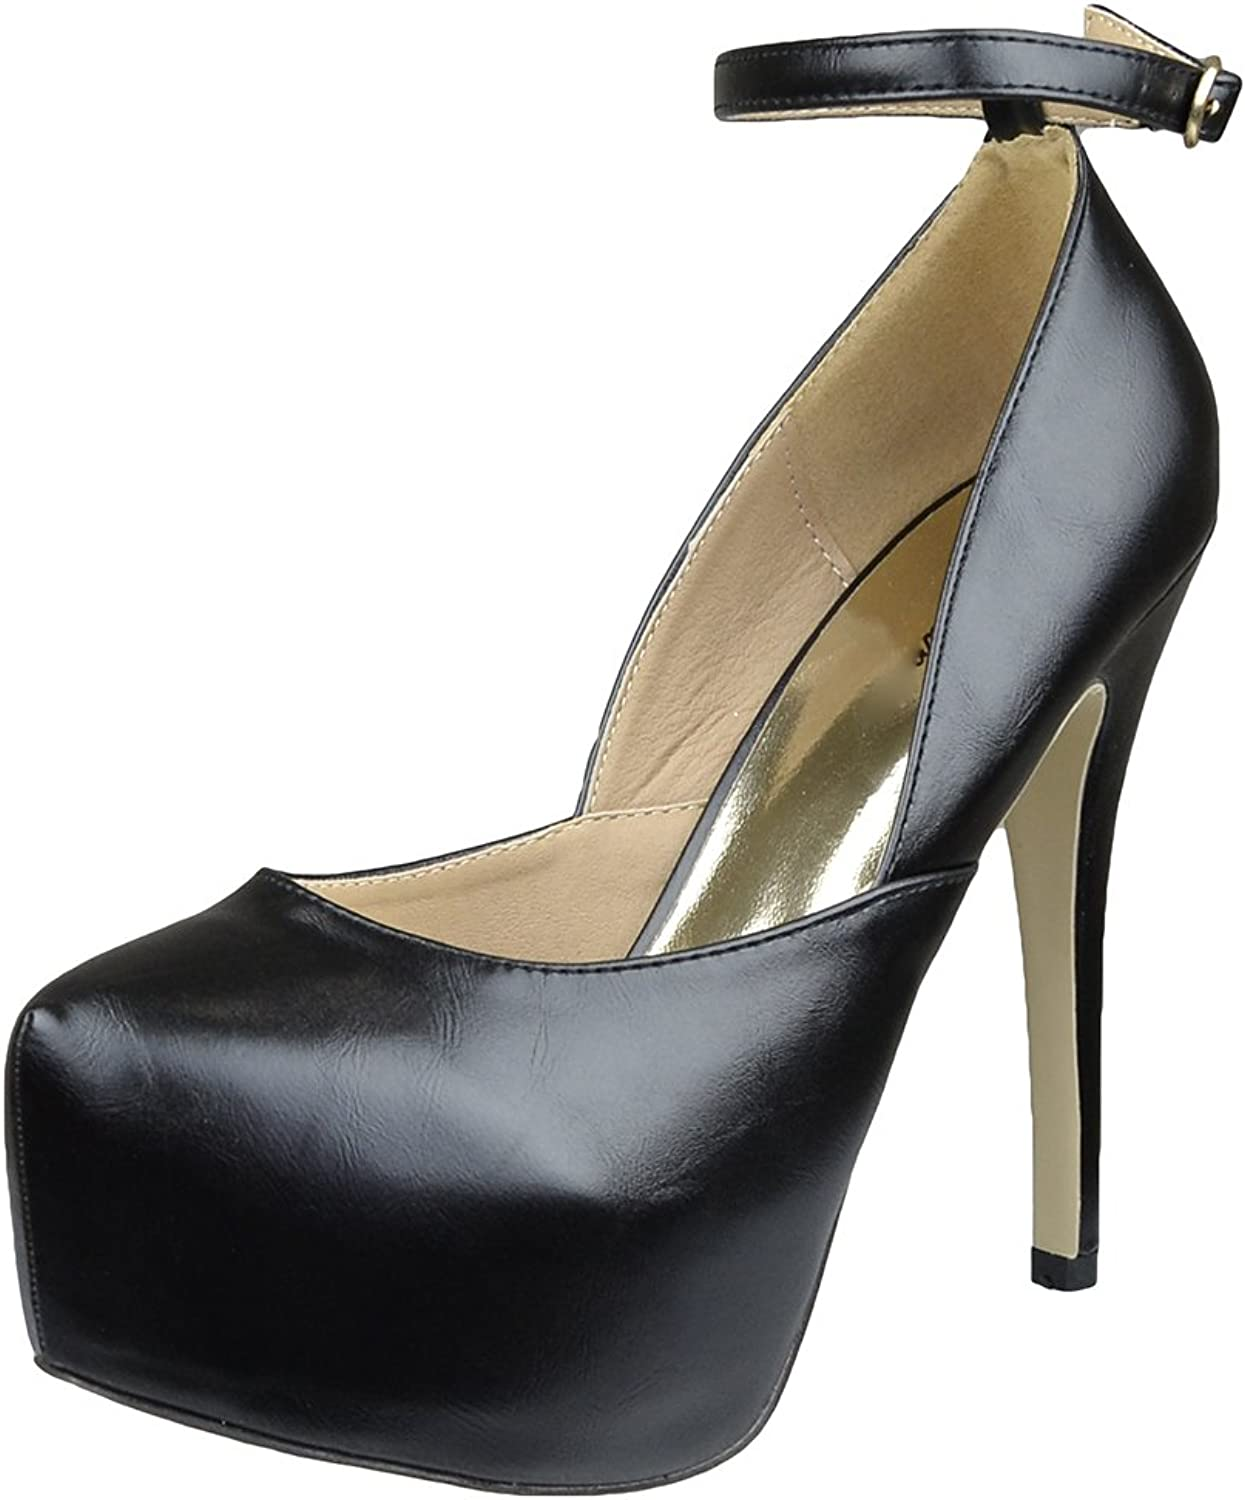 DS By KSC Womens Platform shoes Sexy Scoop Vamp High Heel Dress shoes Black